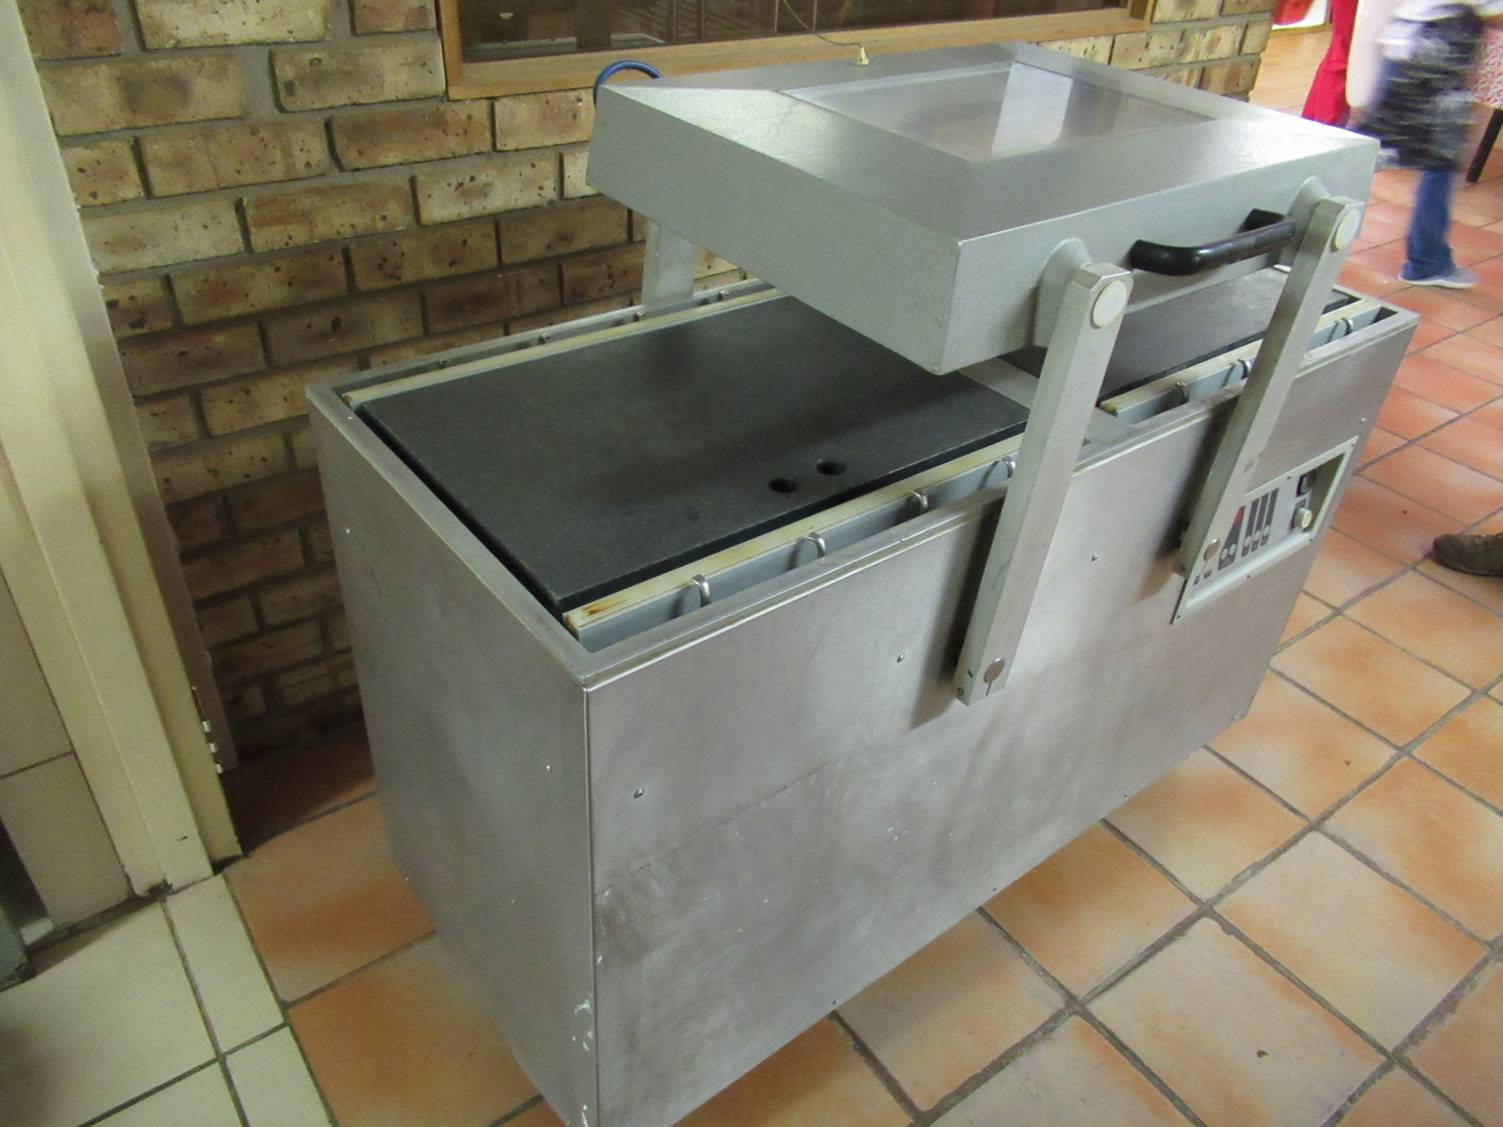 Audion Elektro VM 251 LL , Double Chamber -  Onsite Auction Of A Butchery And Meat Processing Equipment